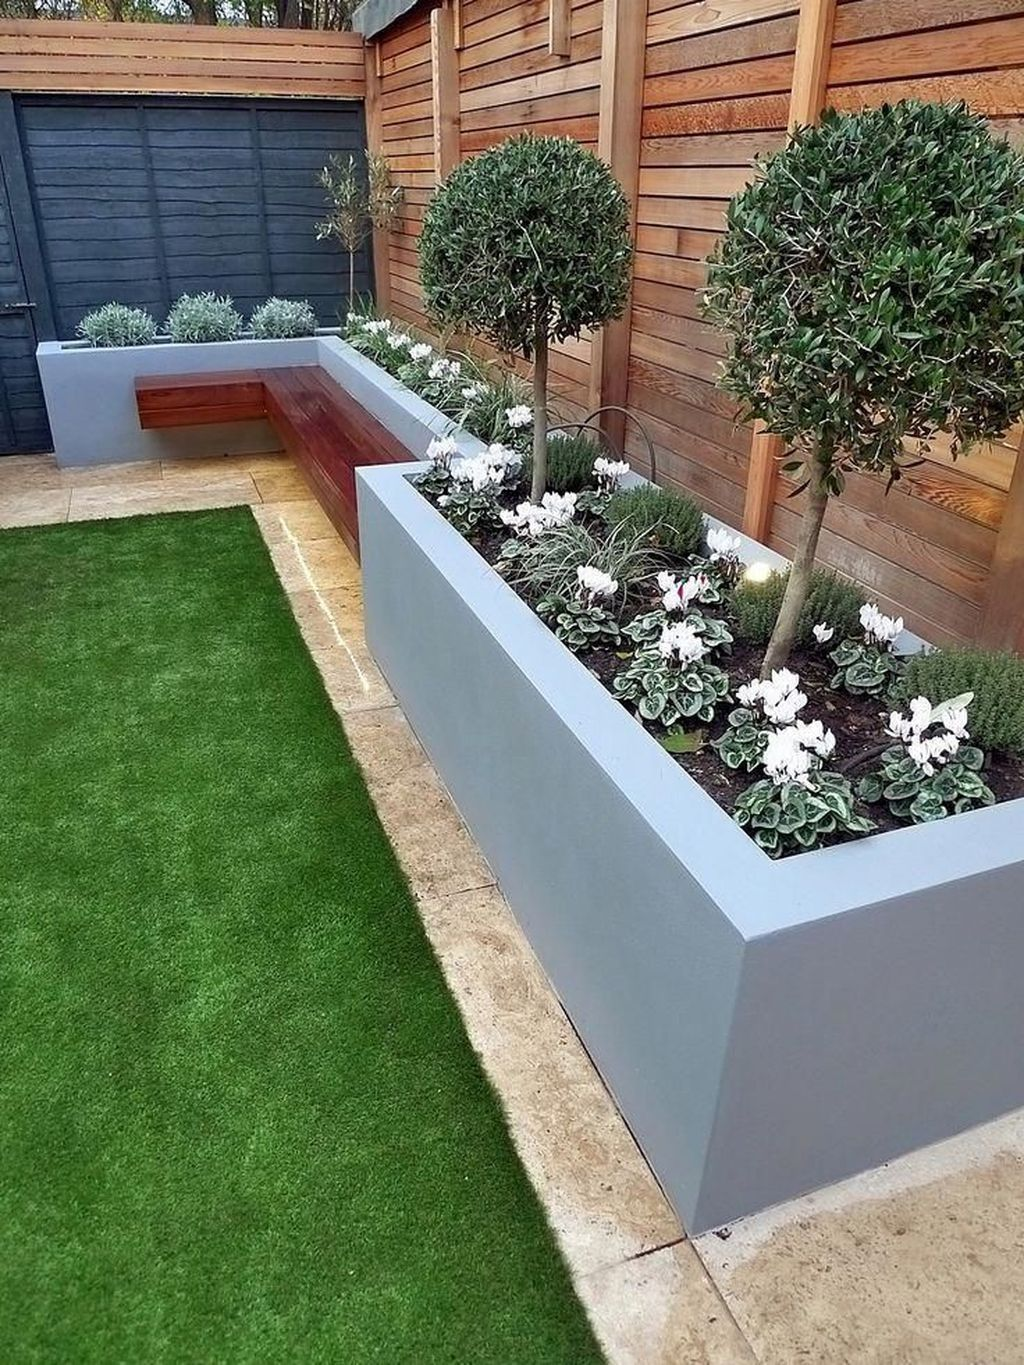 41 Gorgeous Small Garden Design Ideas To Try This Year In 2020 Backyard Landscaping Designs Back Garden Design Modern Garden Design